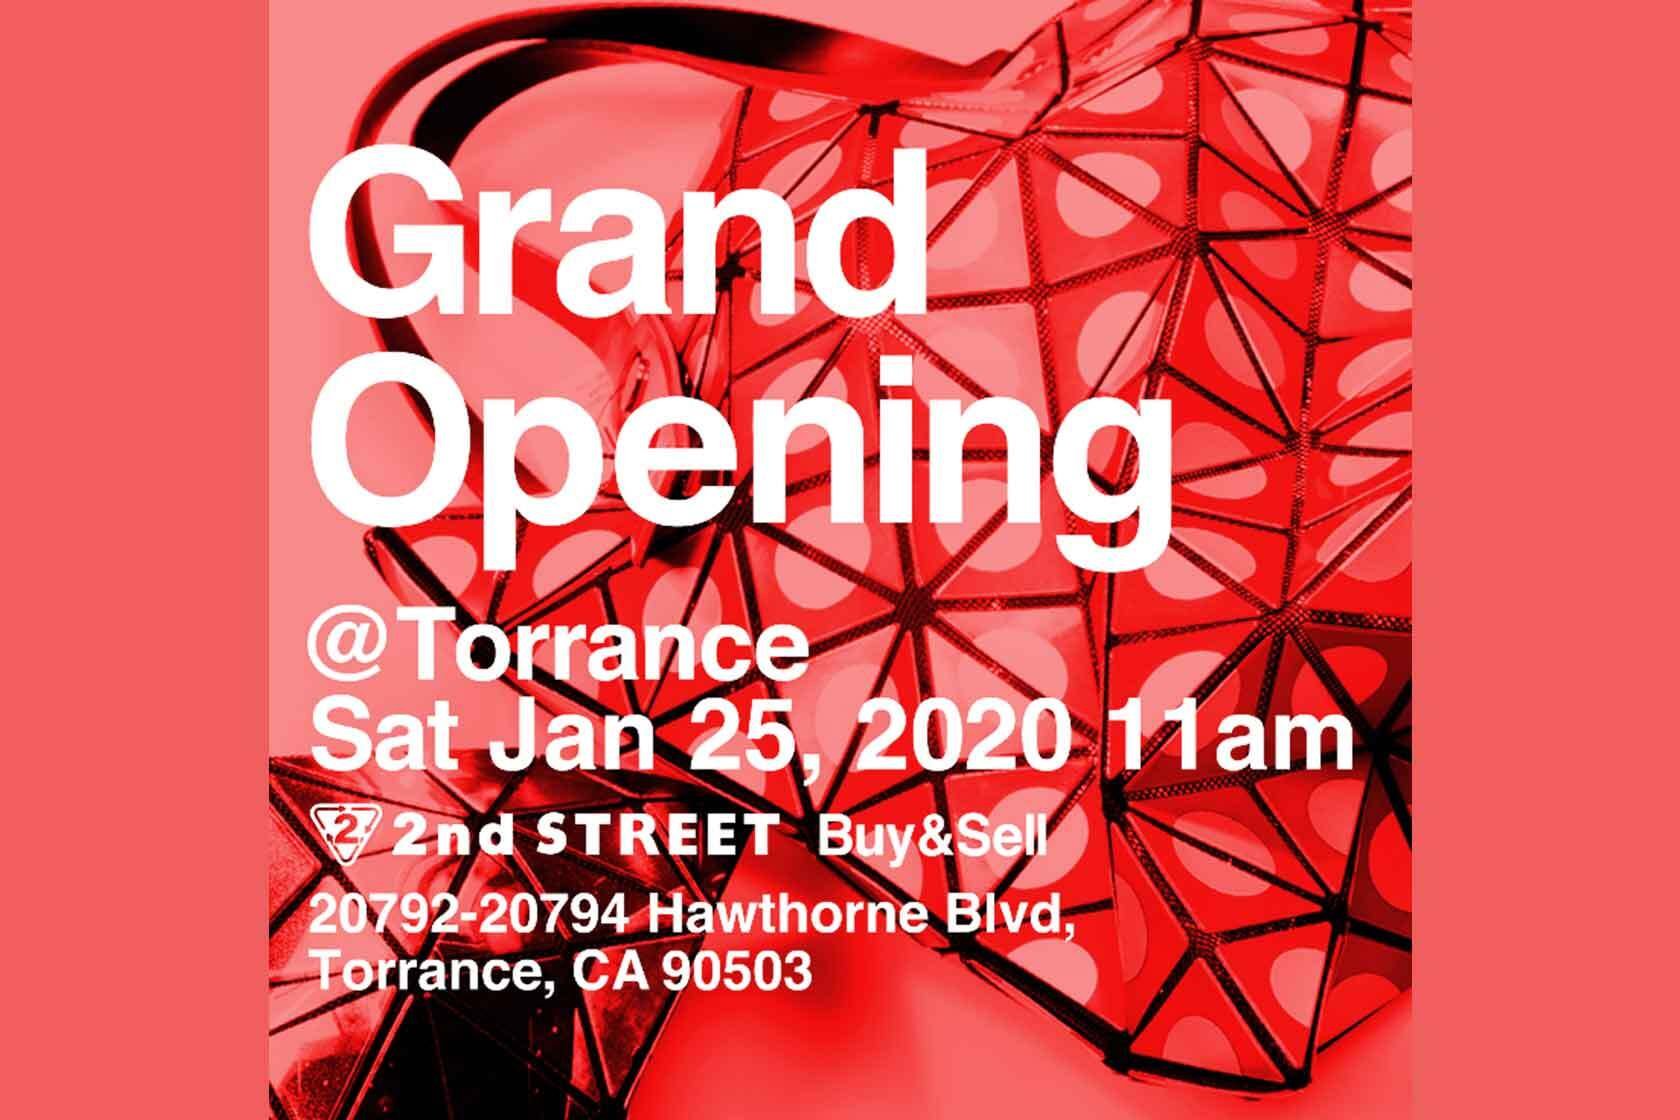 2nd STREET Torrance Grand Opening